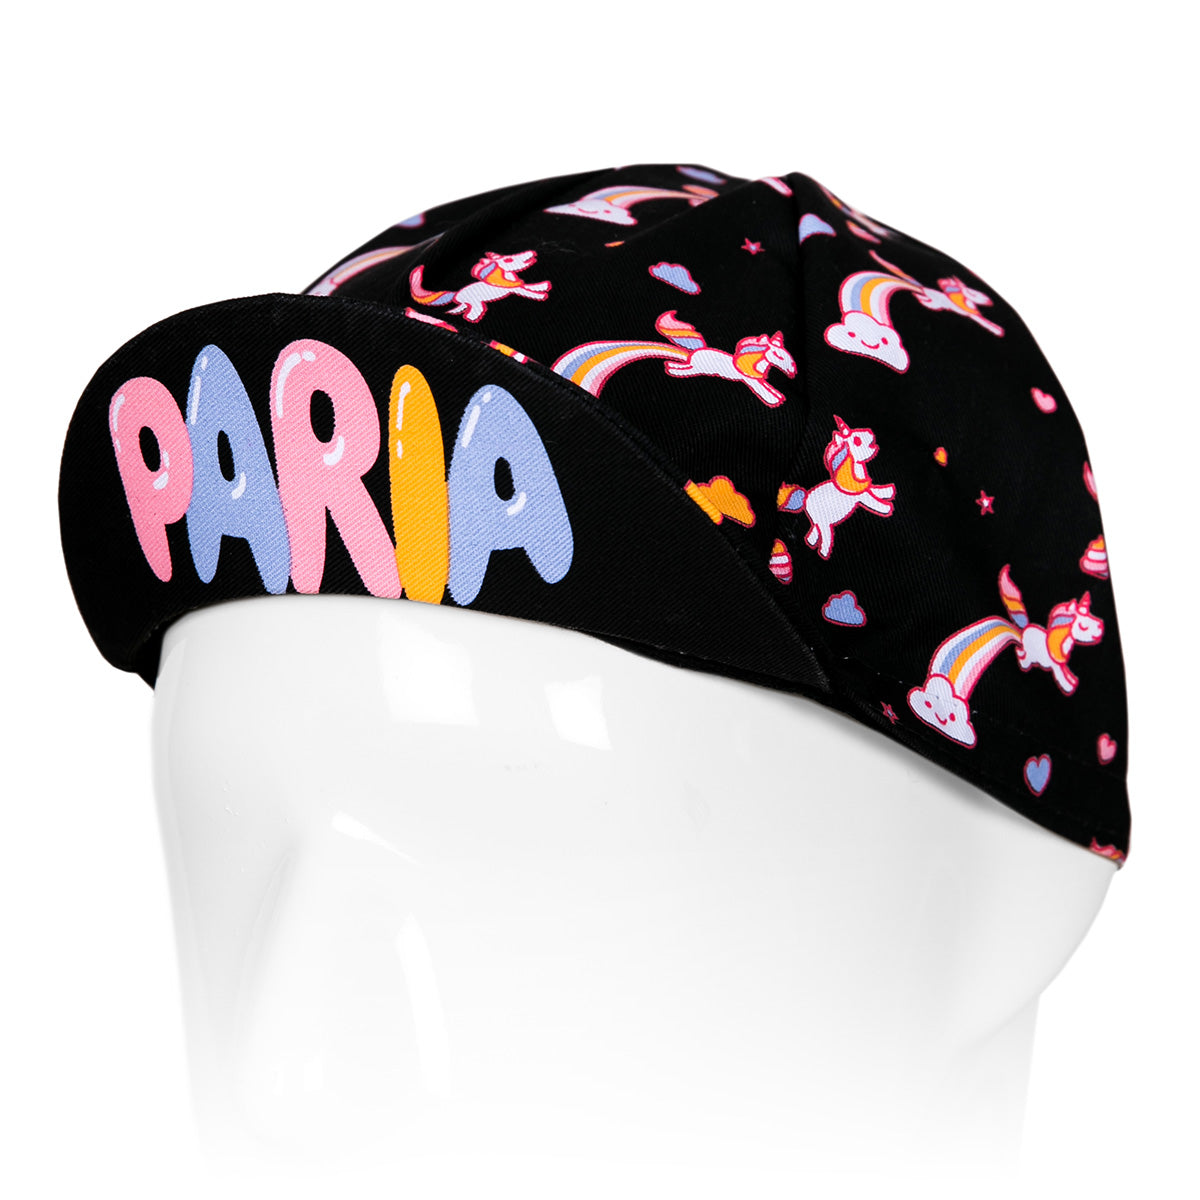 Unicorn Print Cycling Jersey + Bib + Cap Kit Bundle by Paria